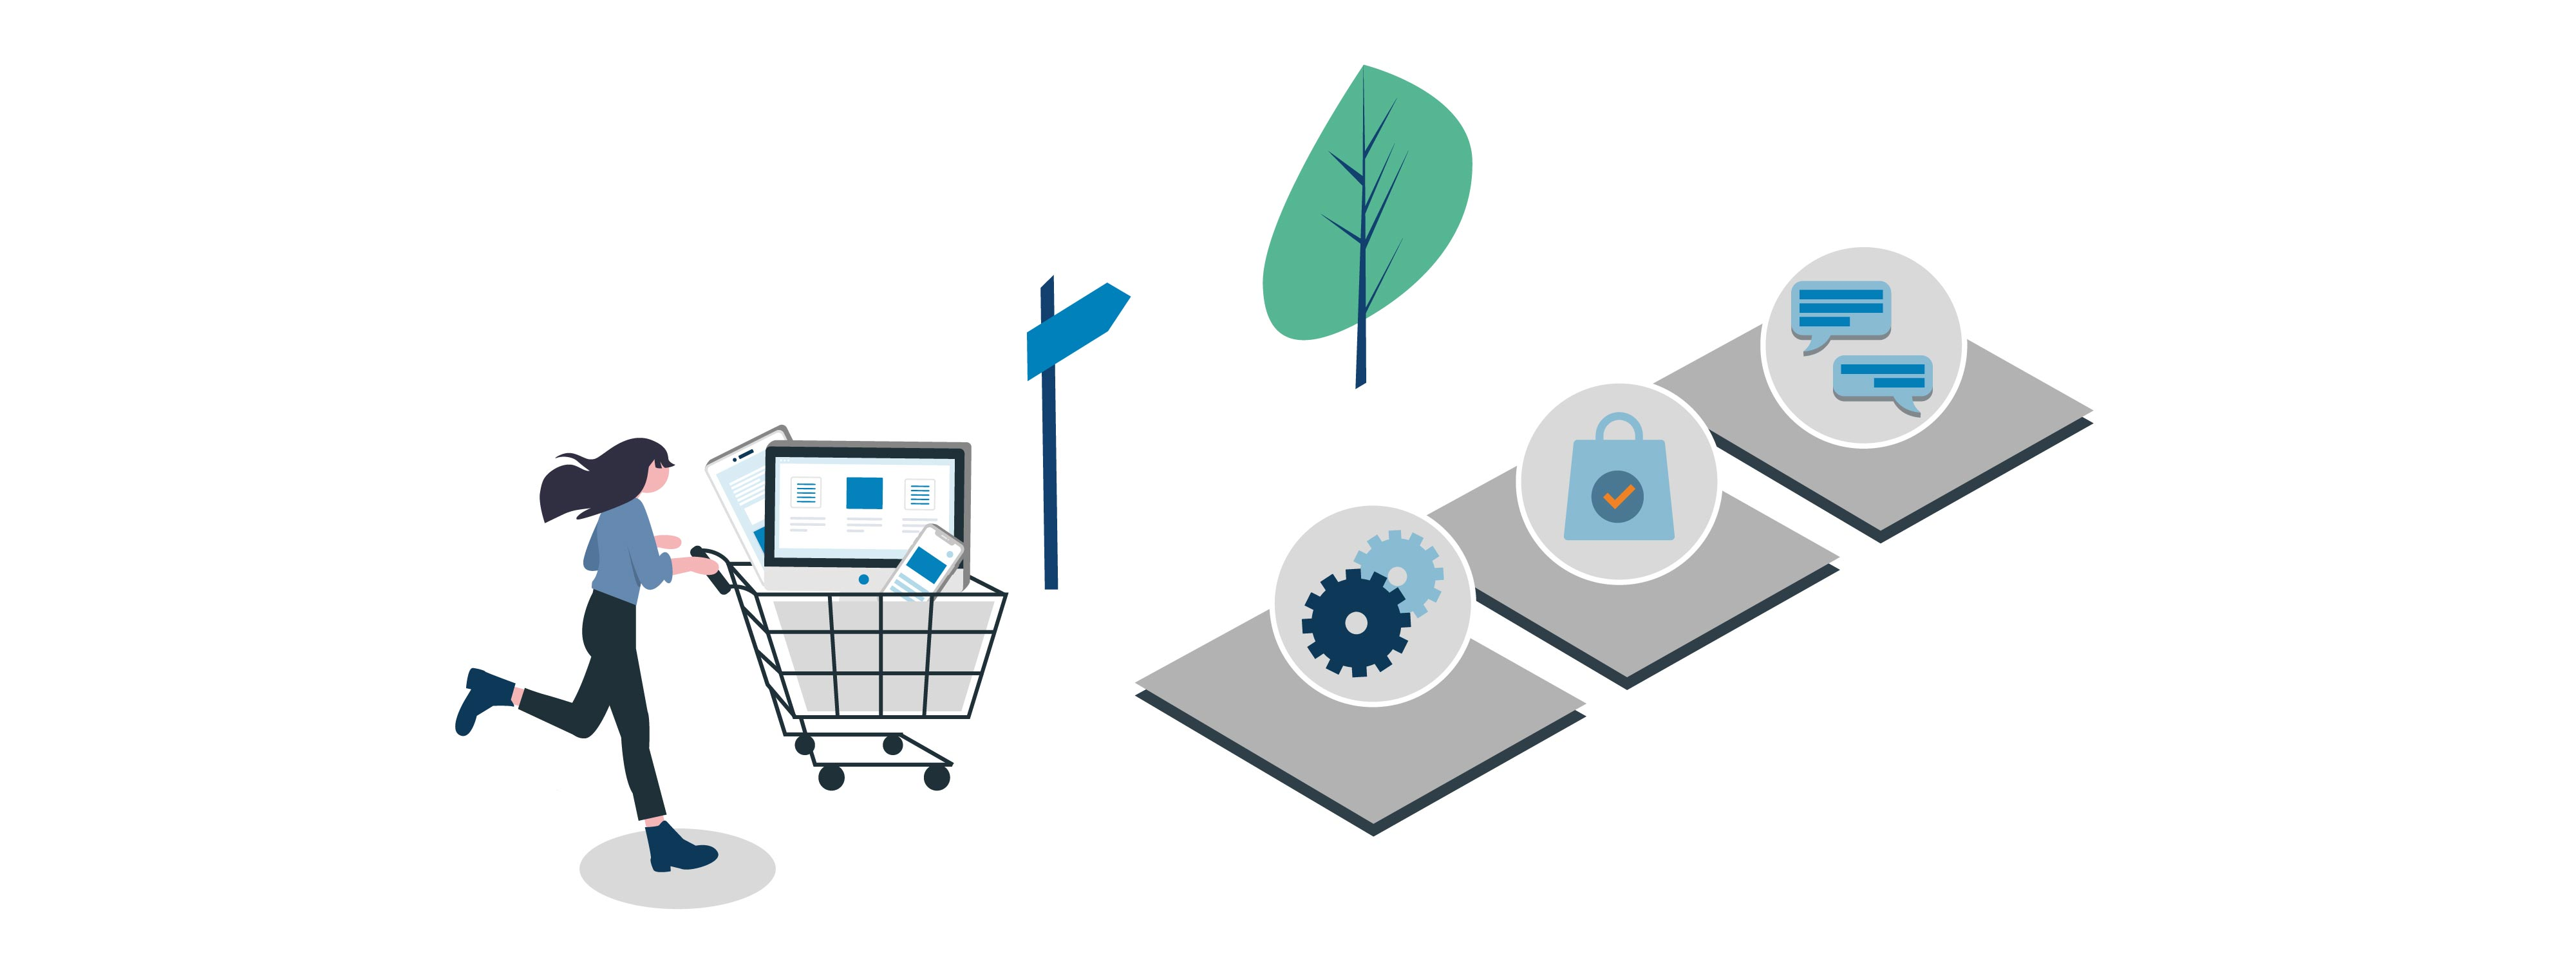 ITSM ordering processes: 4 steps to save you time and money.